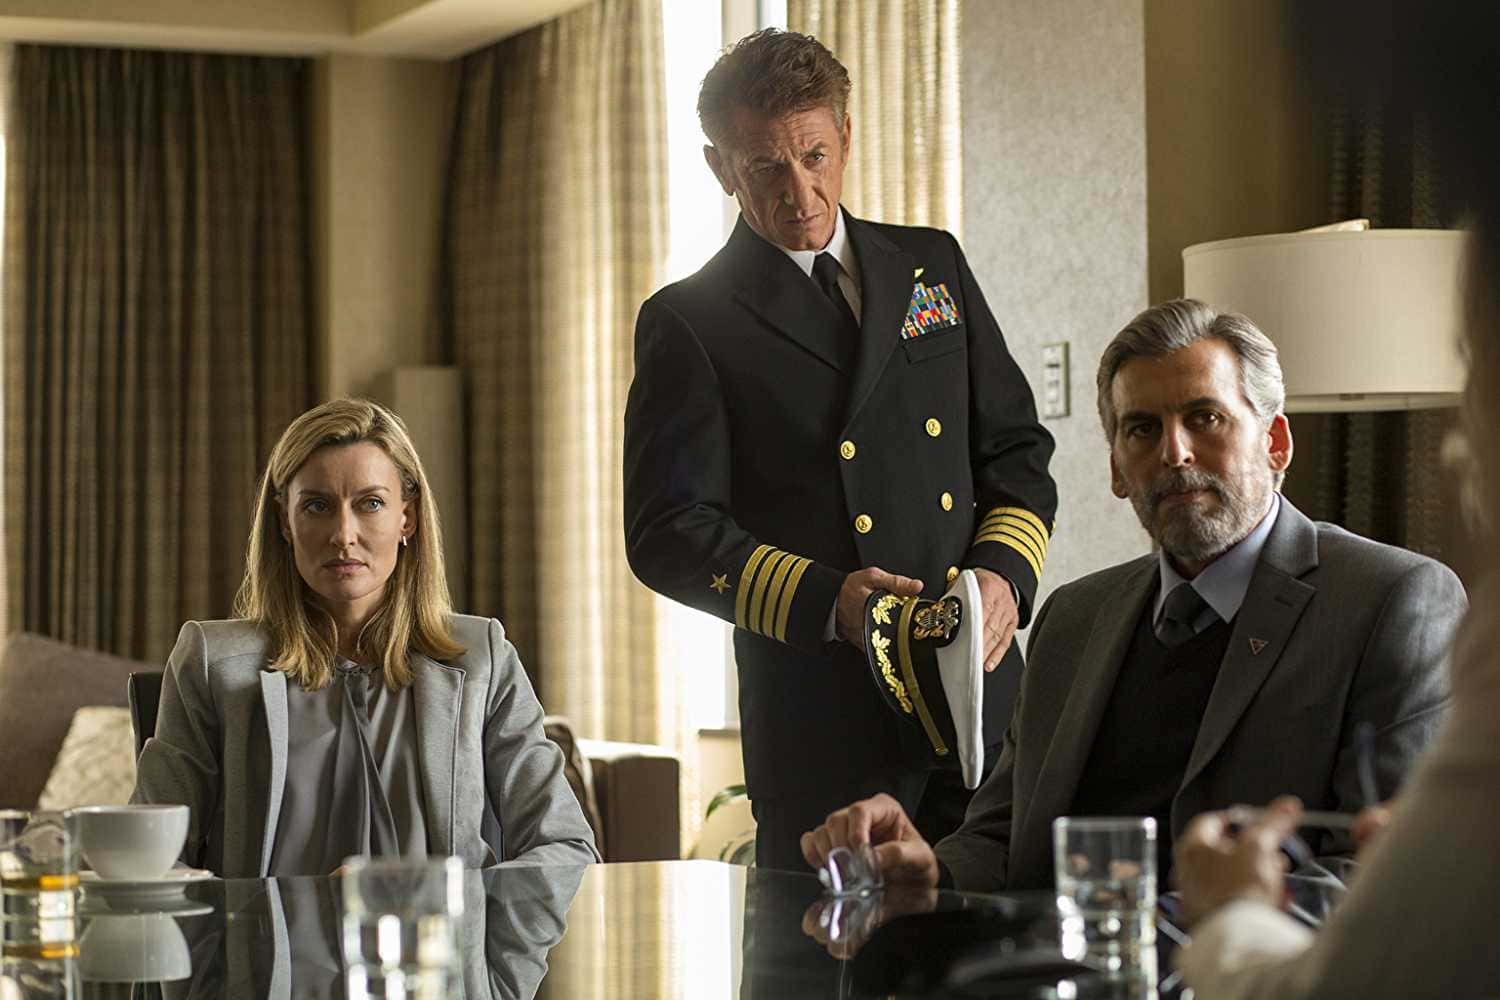 Sean Penn, Natascha McElhone, and Tom Hagerty in 'The First' (Source: IMDb)